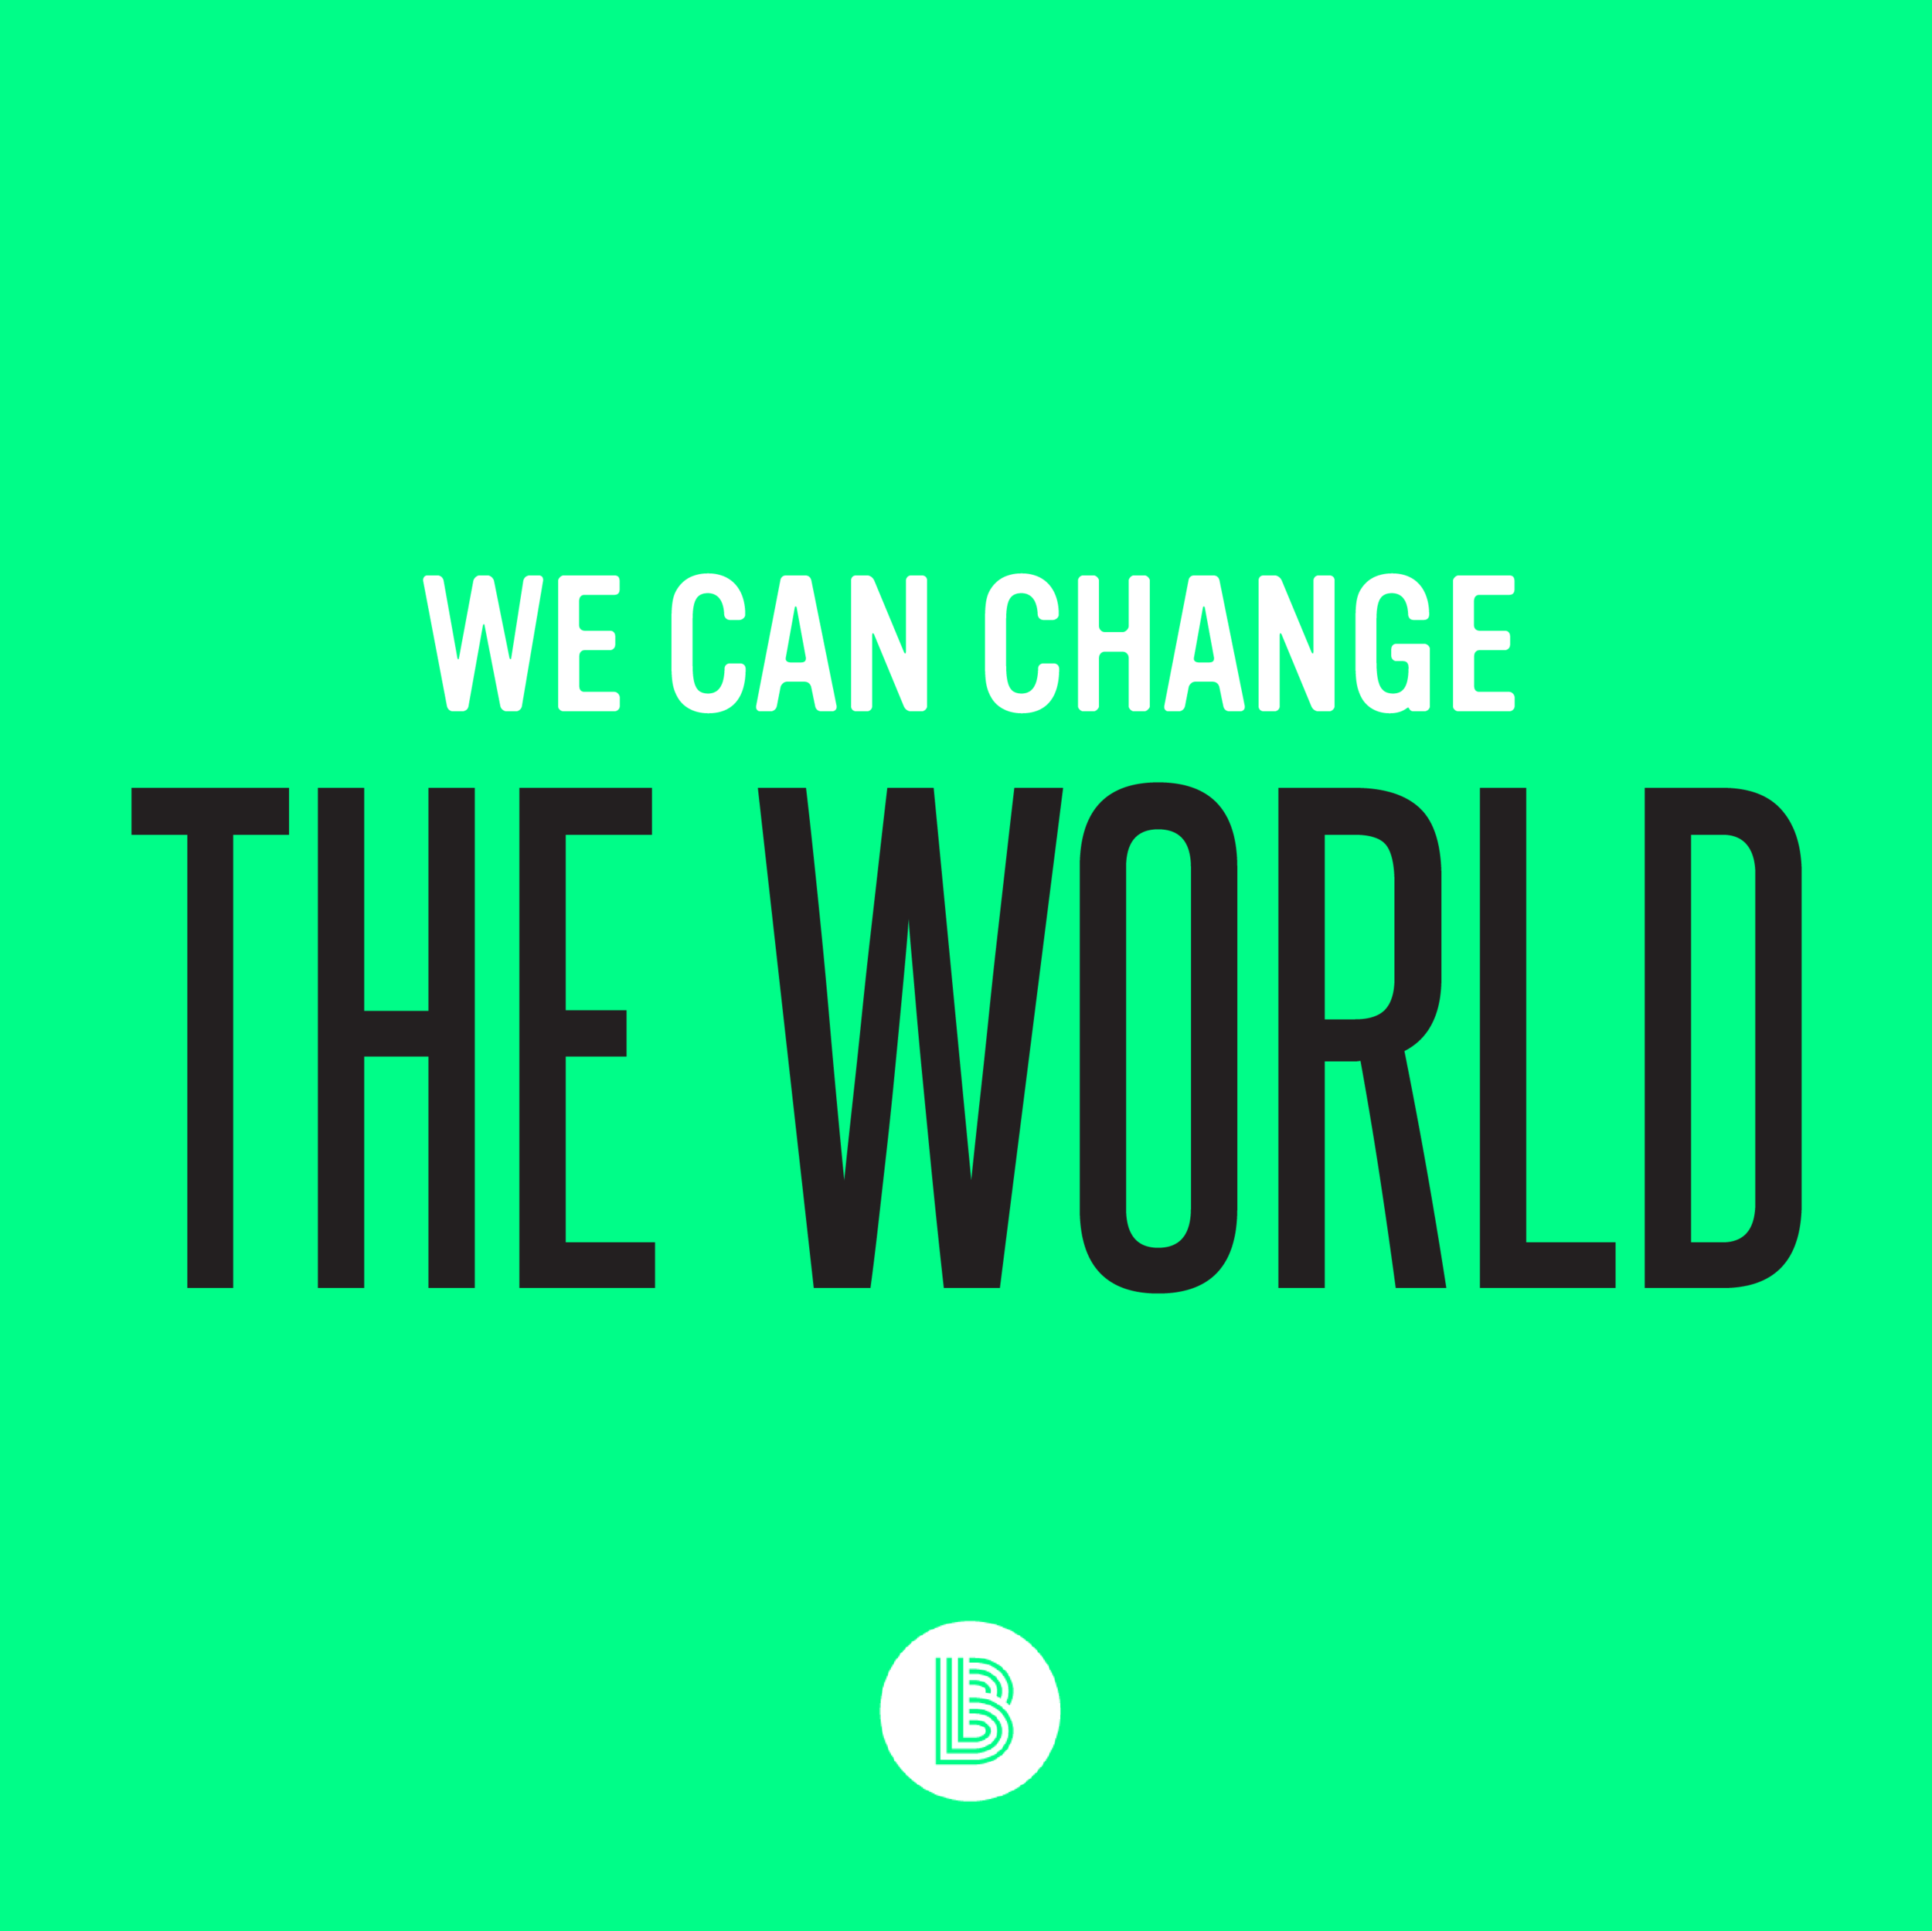 change the world-02 (002).png